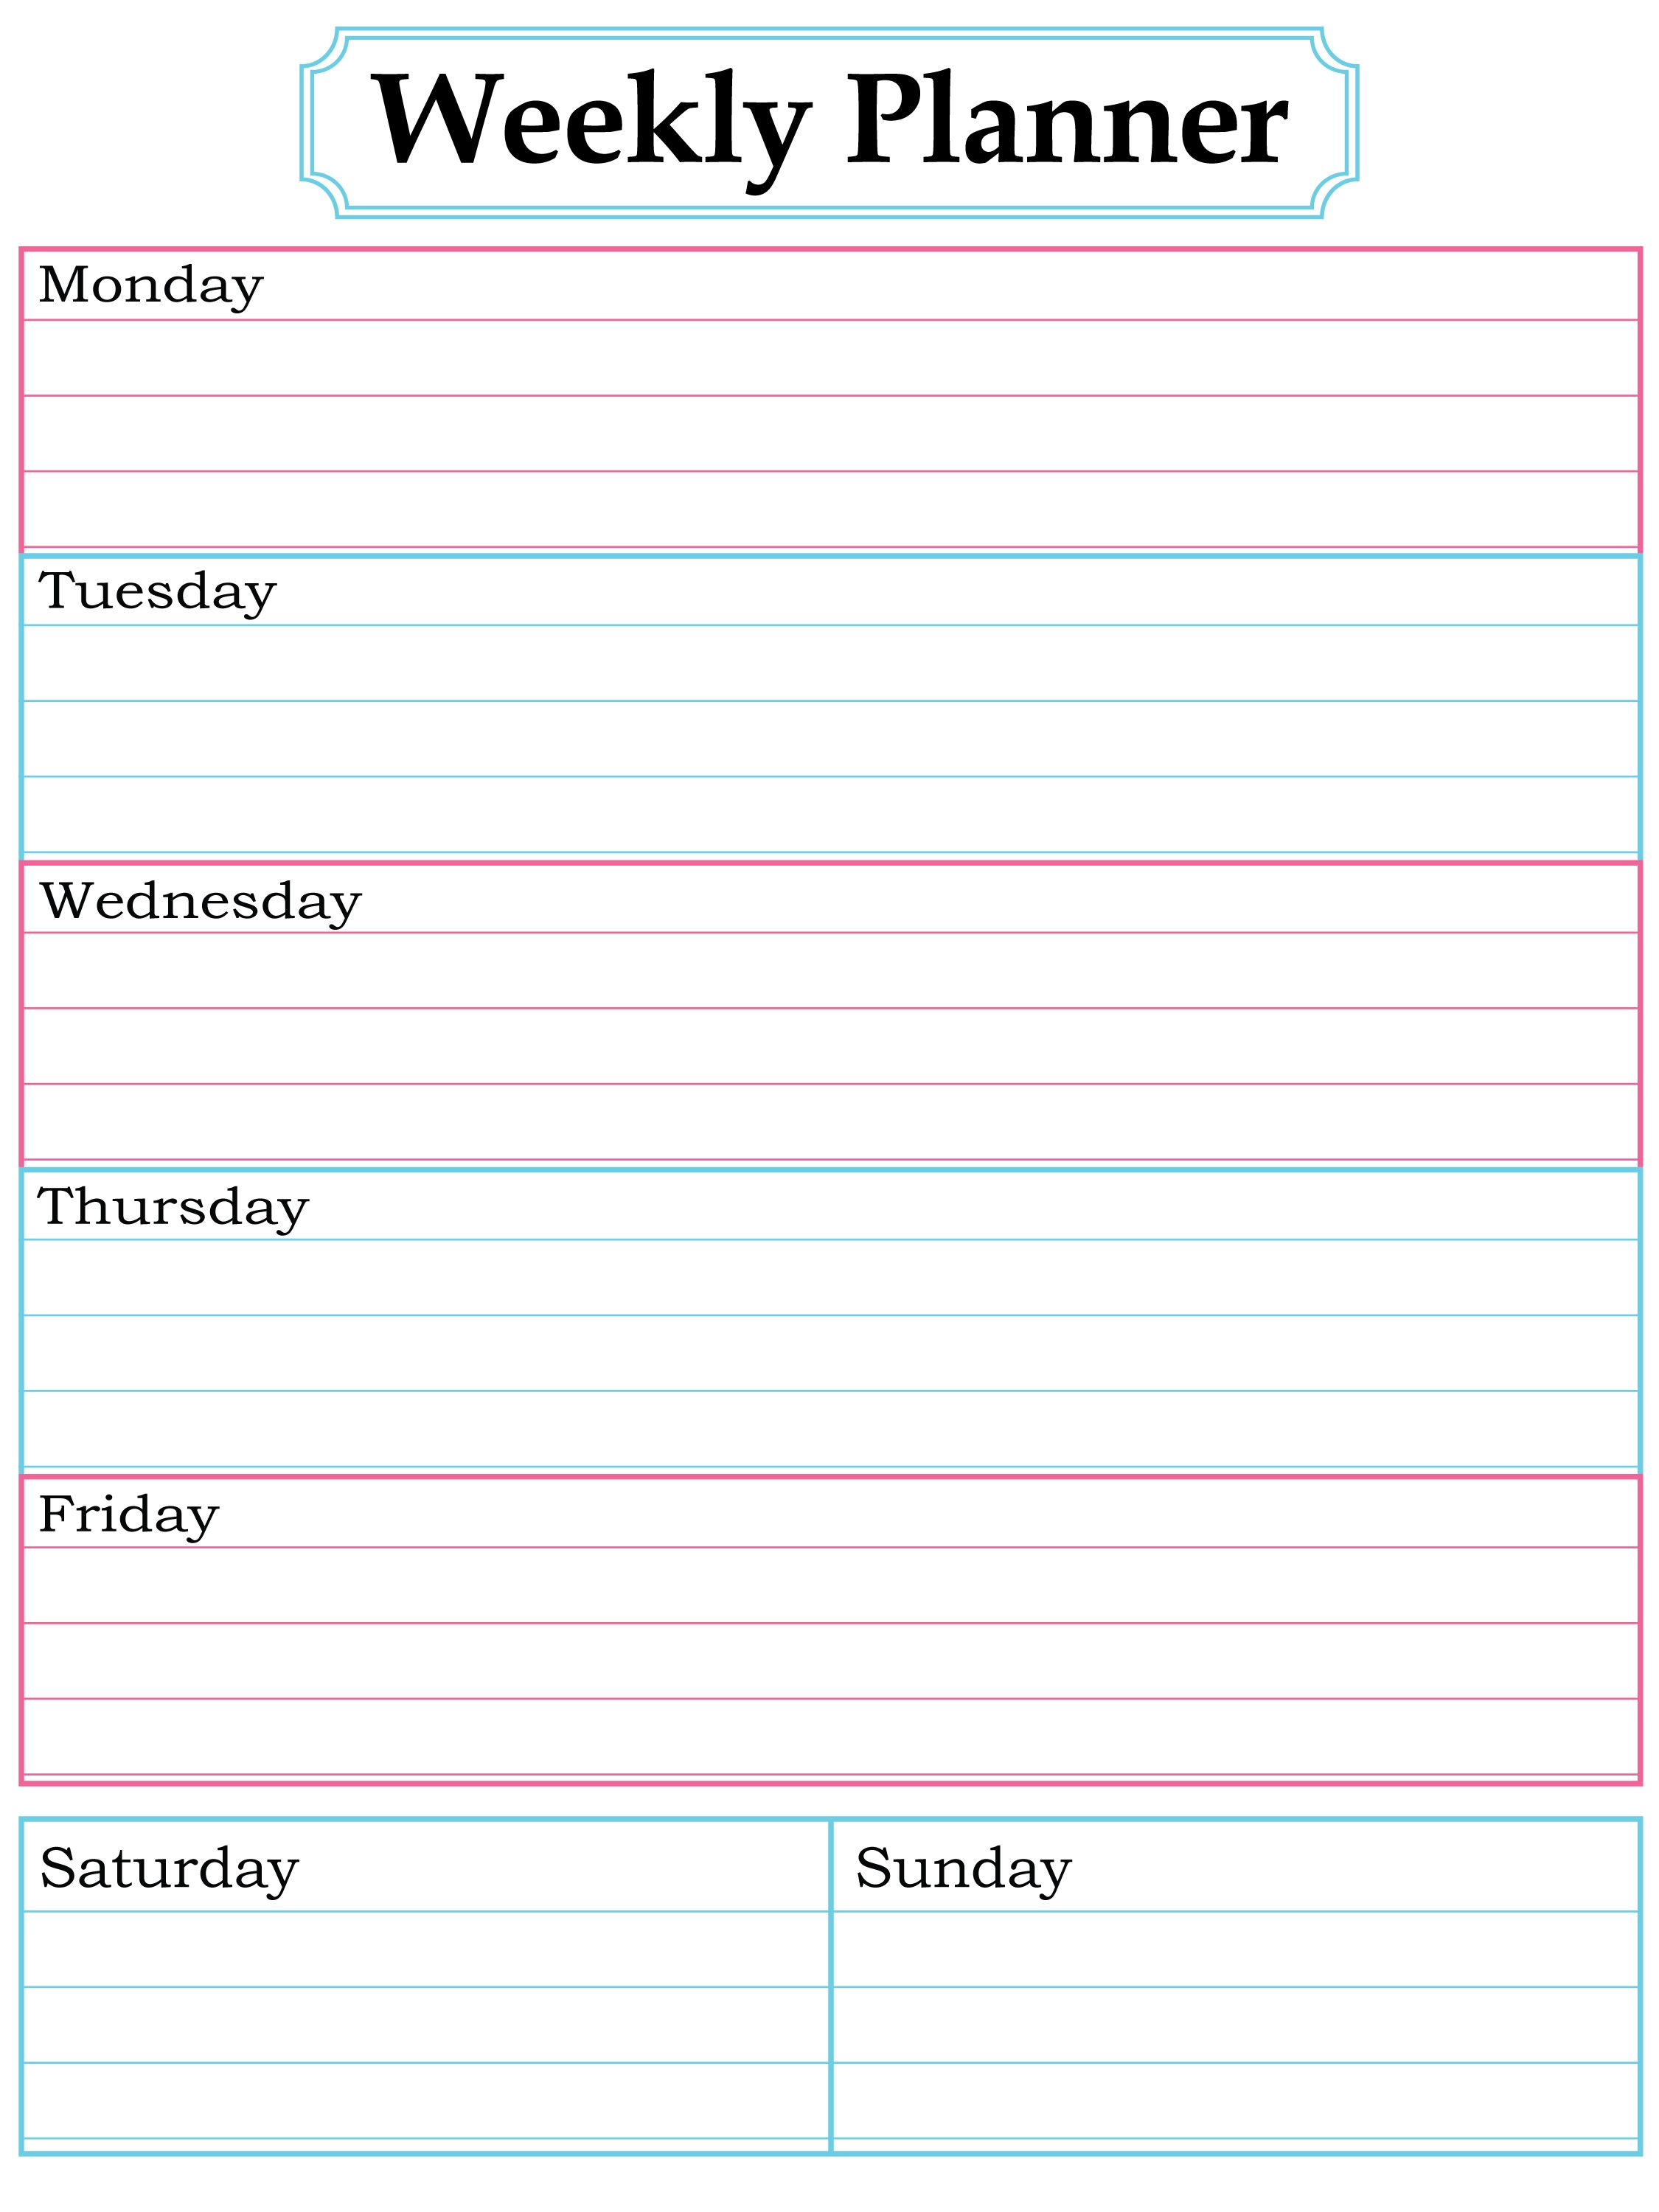 Weekly Planner Template Word Four